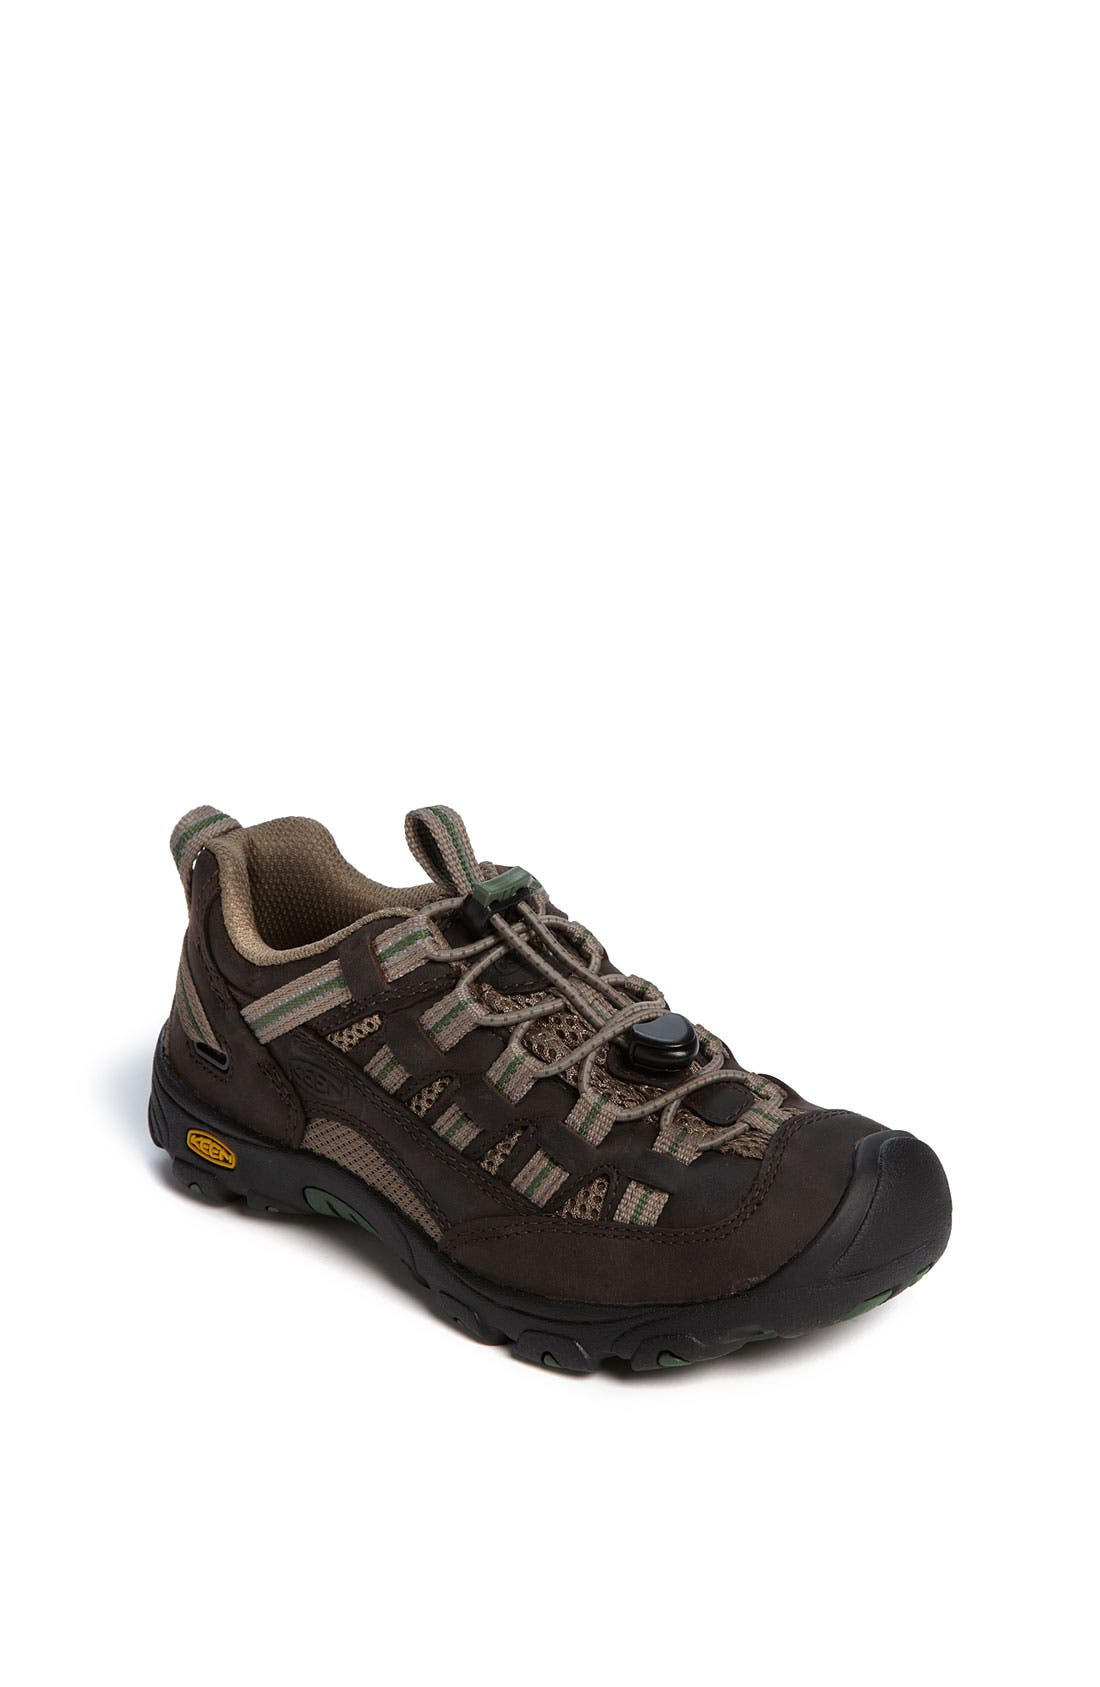 Alternate Image 1 Selected - Keen 'Alamosa' Waterproof Sneaker (Toddler, Little Kid & Big Kid)